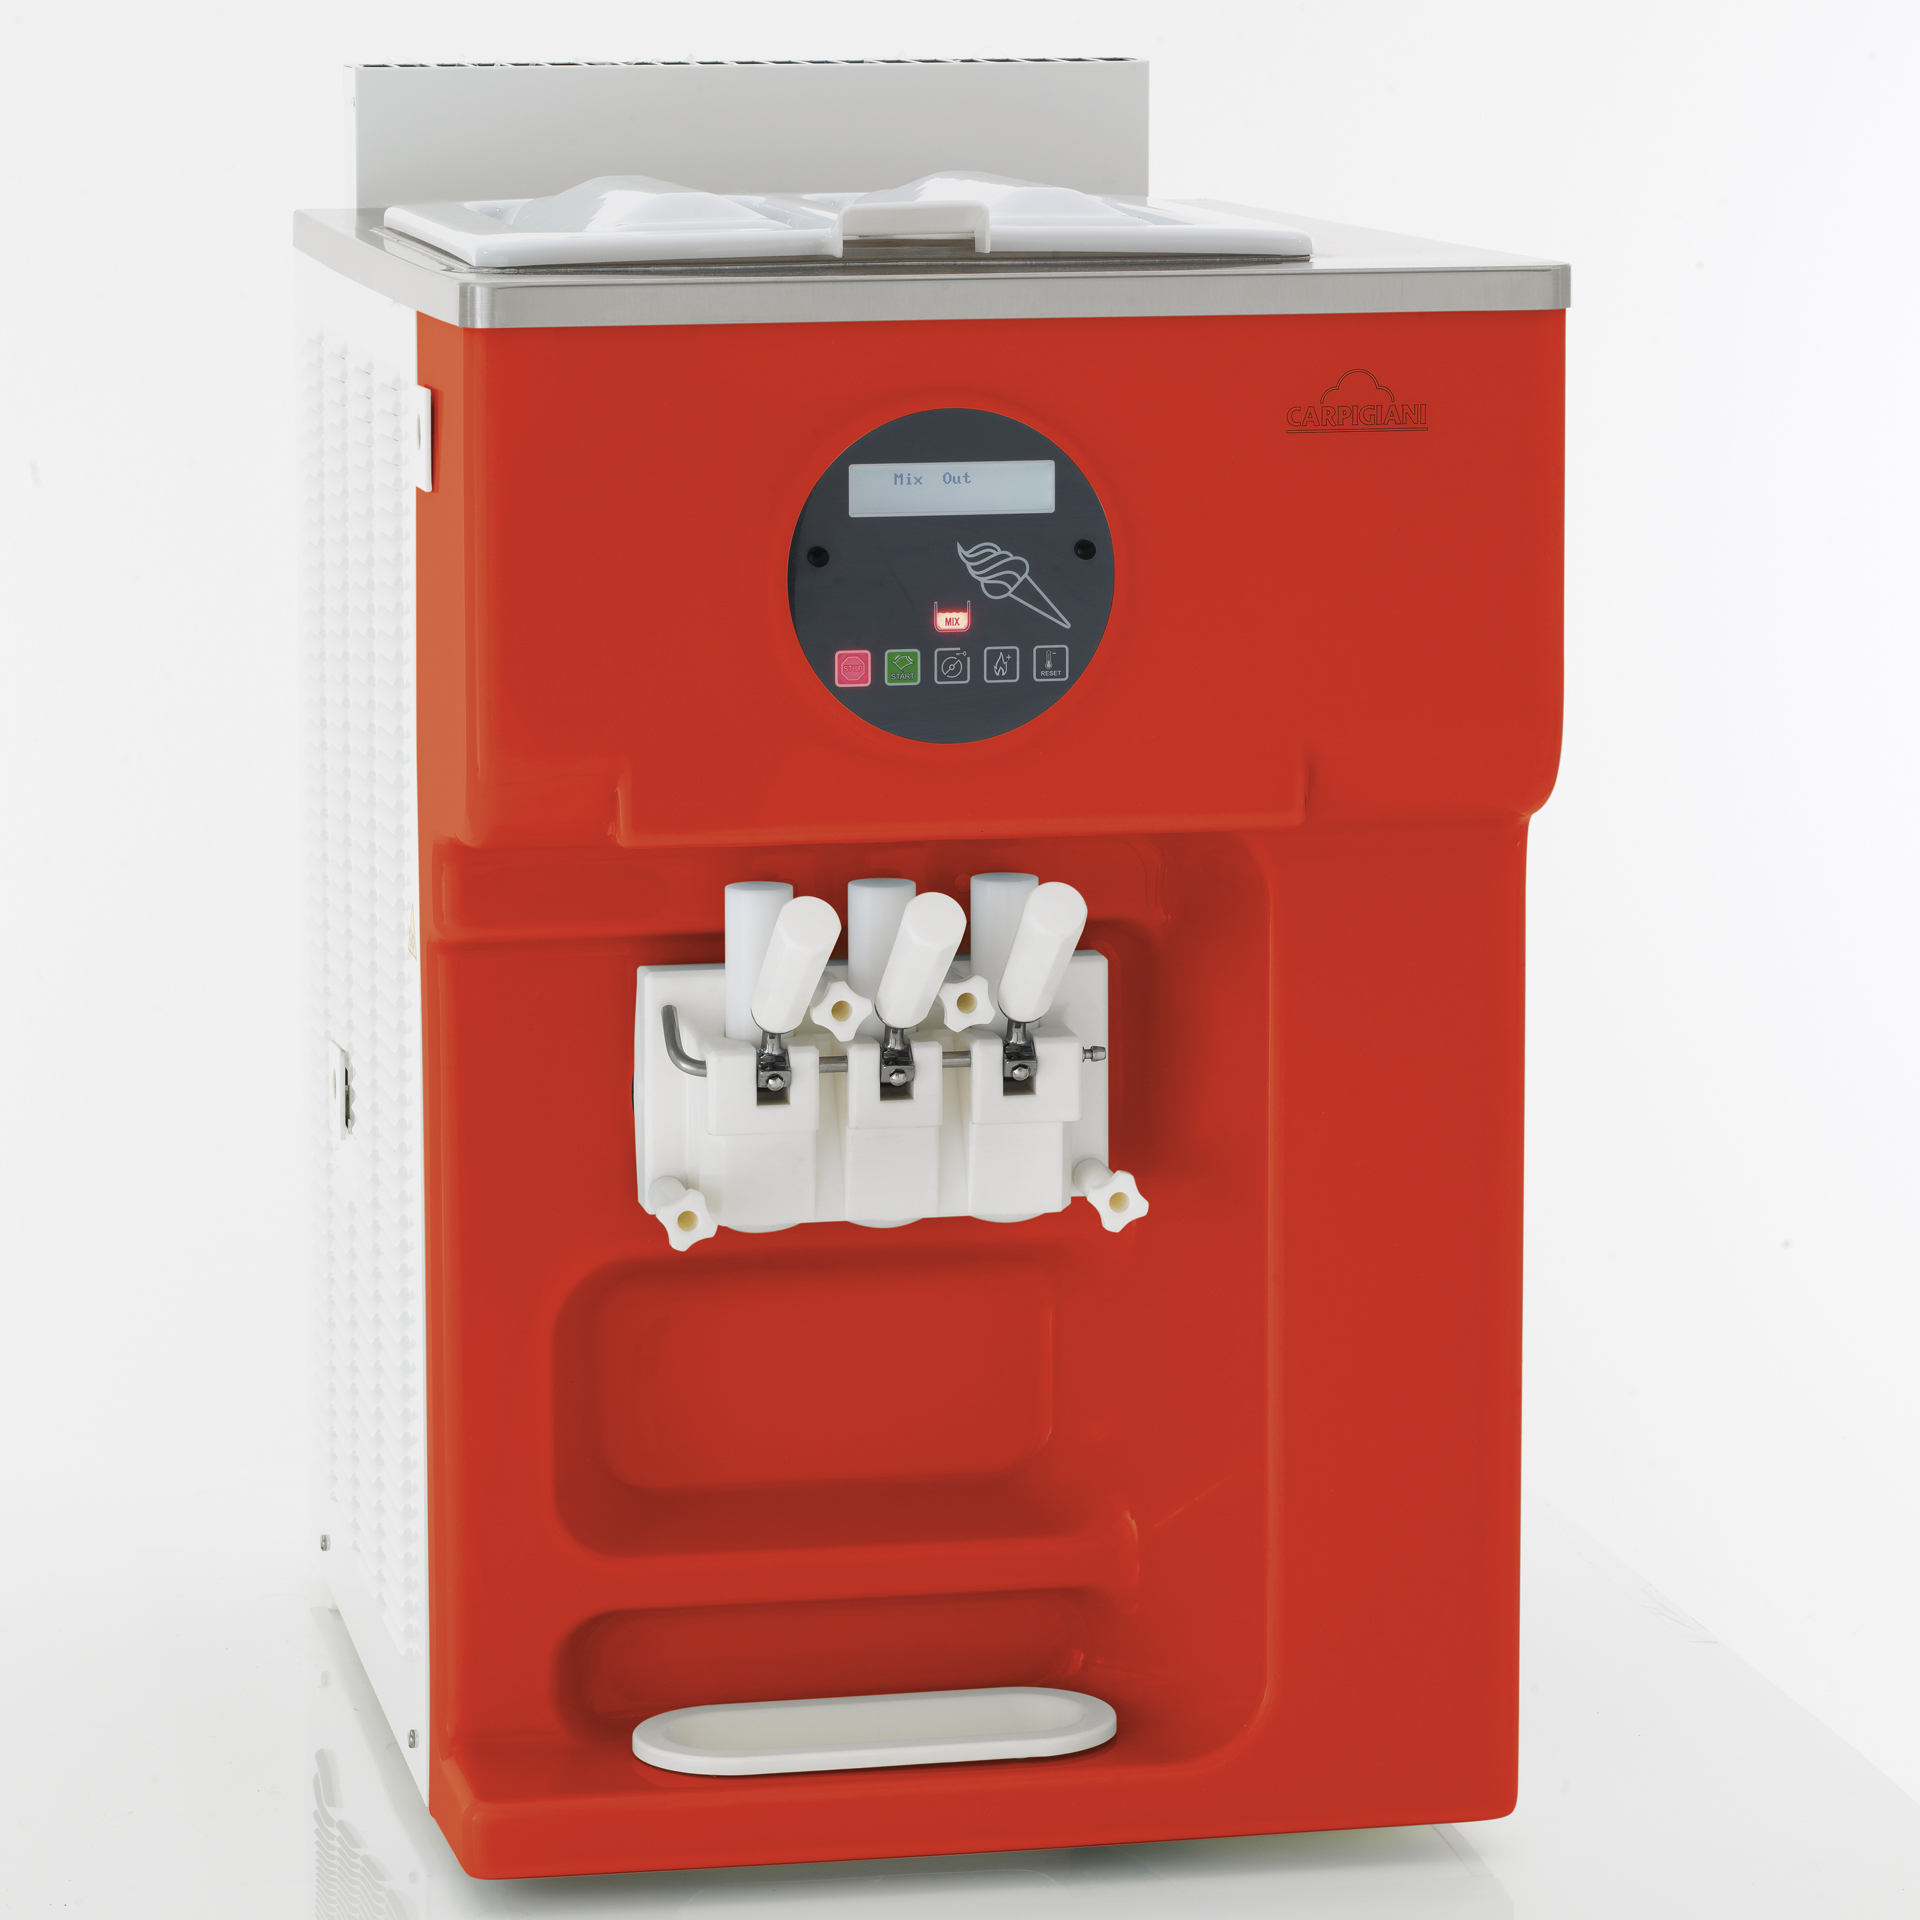 Carpigiani Soft Serve Machine - Only You Personalization